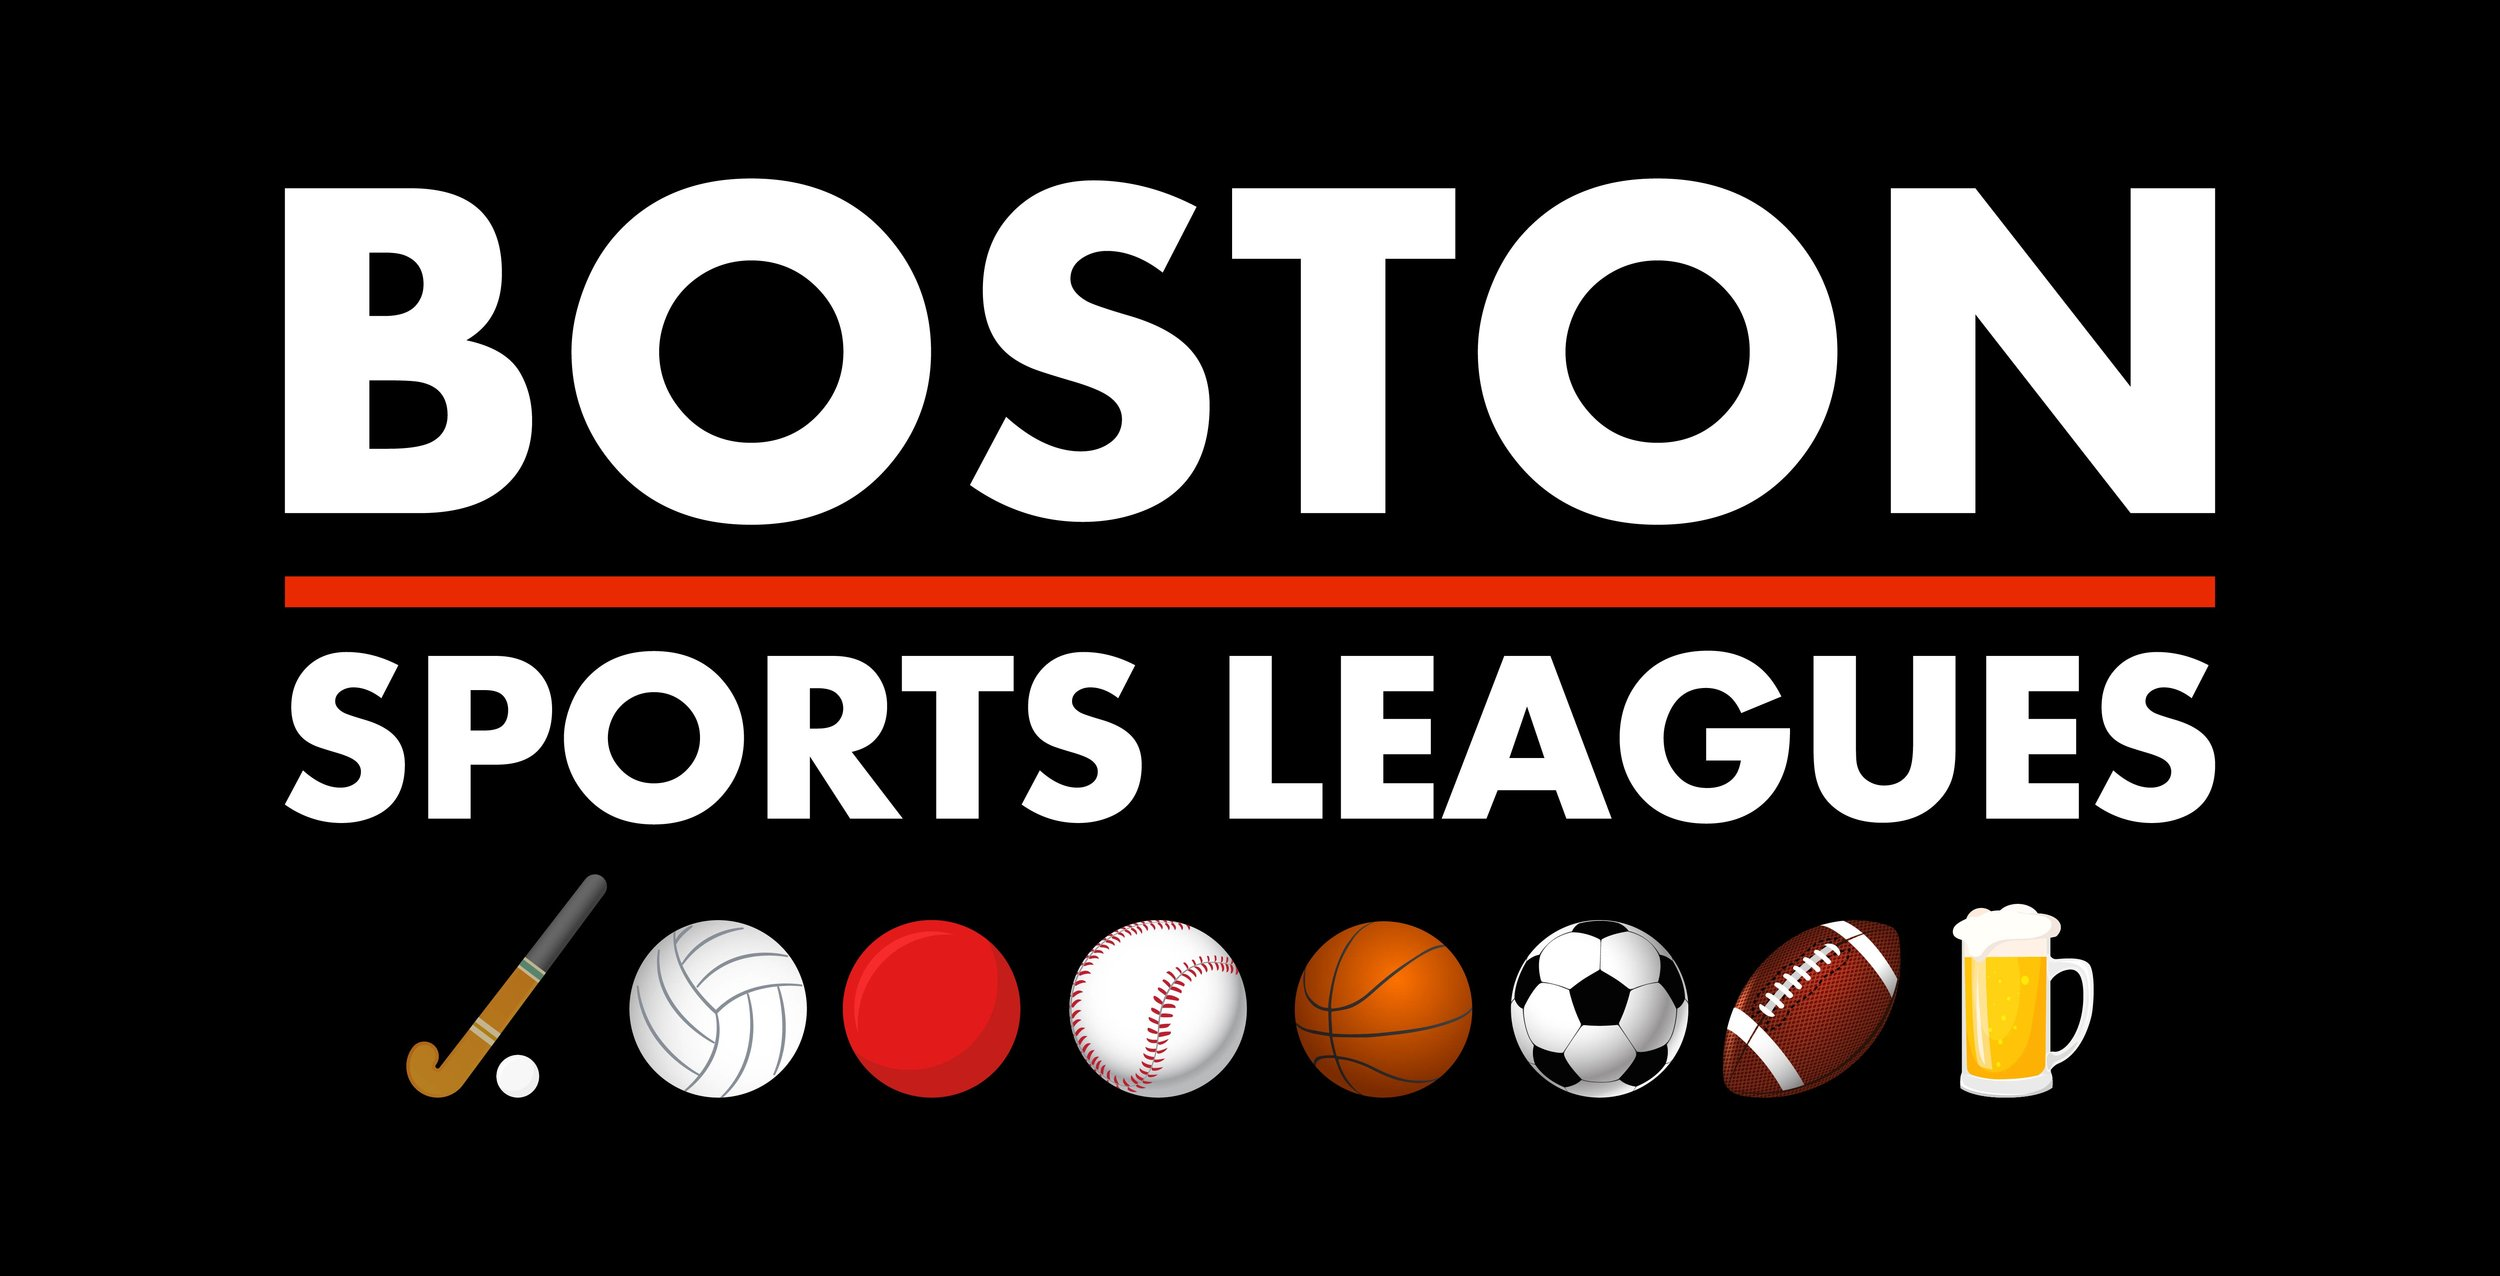 Boston's 1st social sports organization with free memberships! No membership fees, no additional non-member fees, lowest league prices around